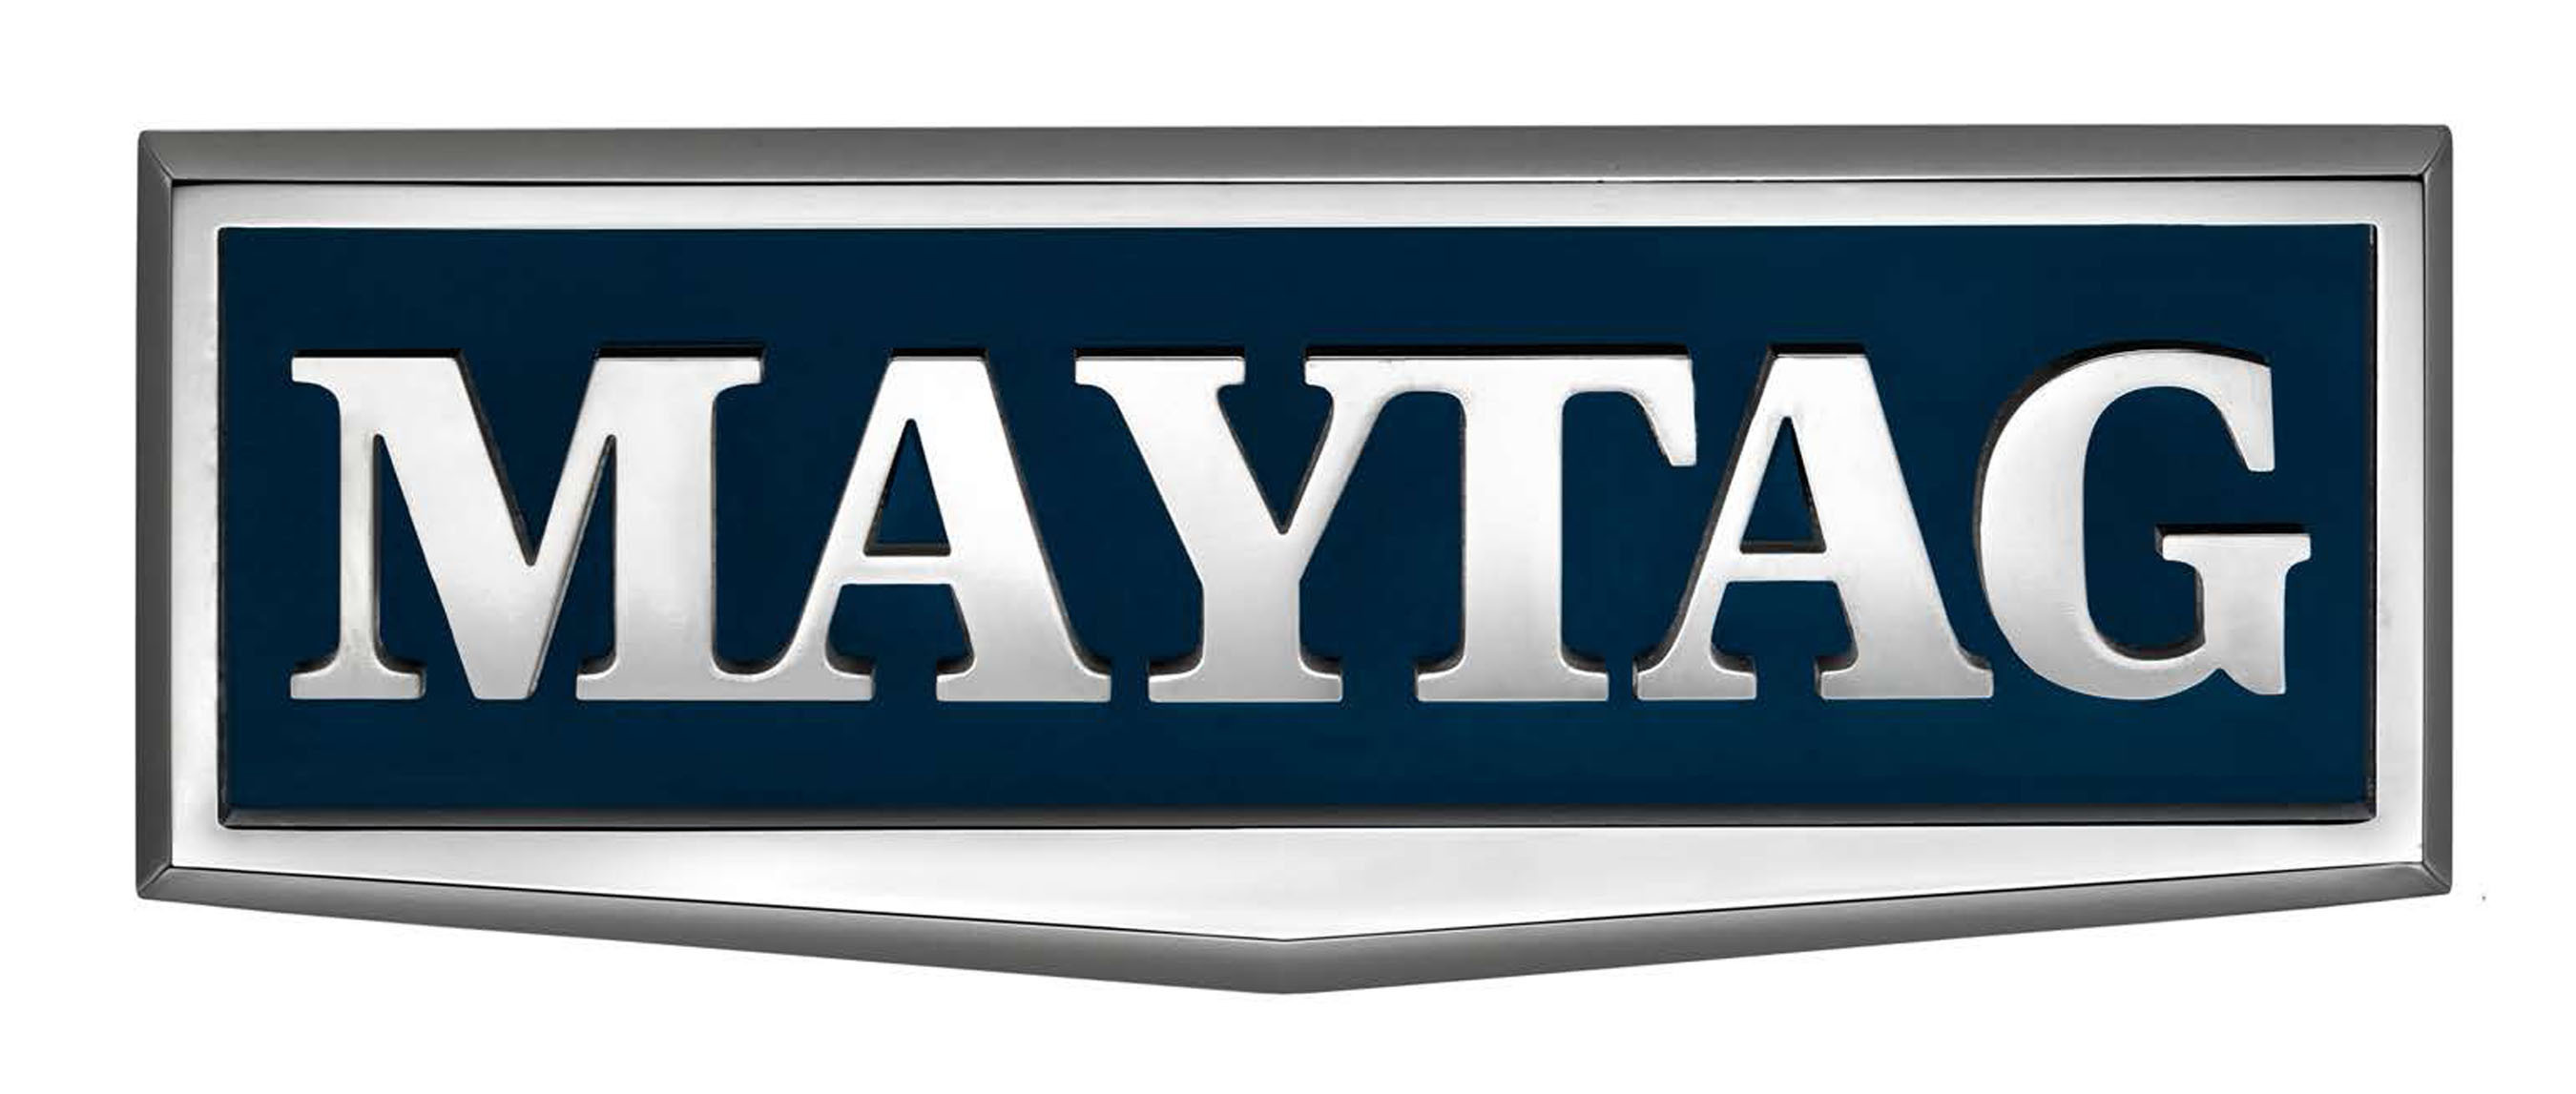 Maytag 'Cleans Up' Social Media Feeds with 'No Smear Campaign'